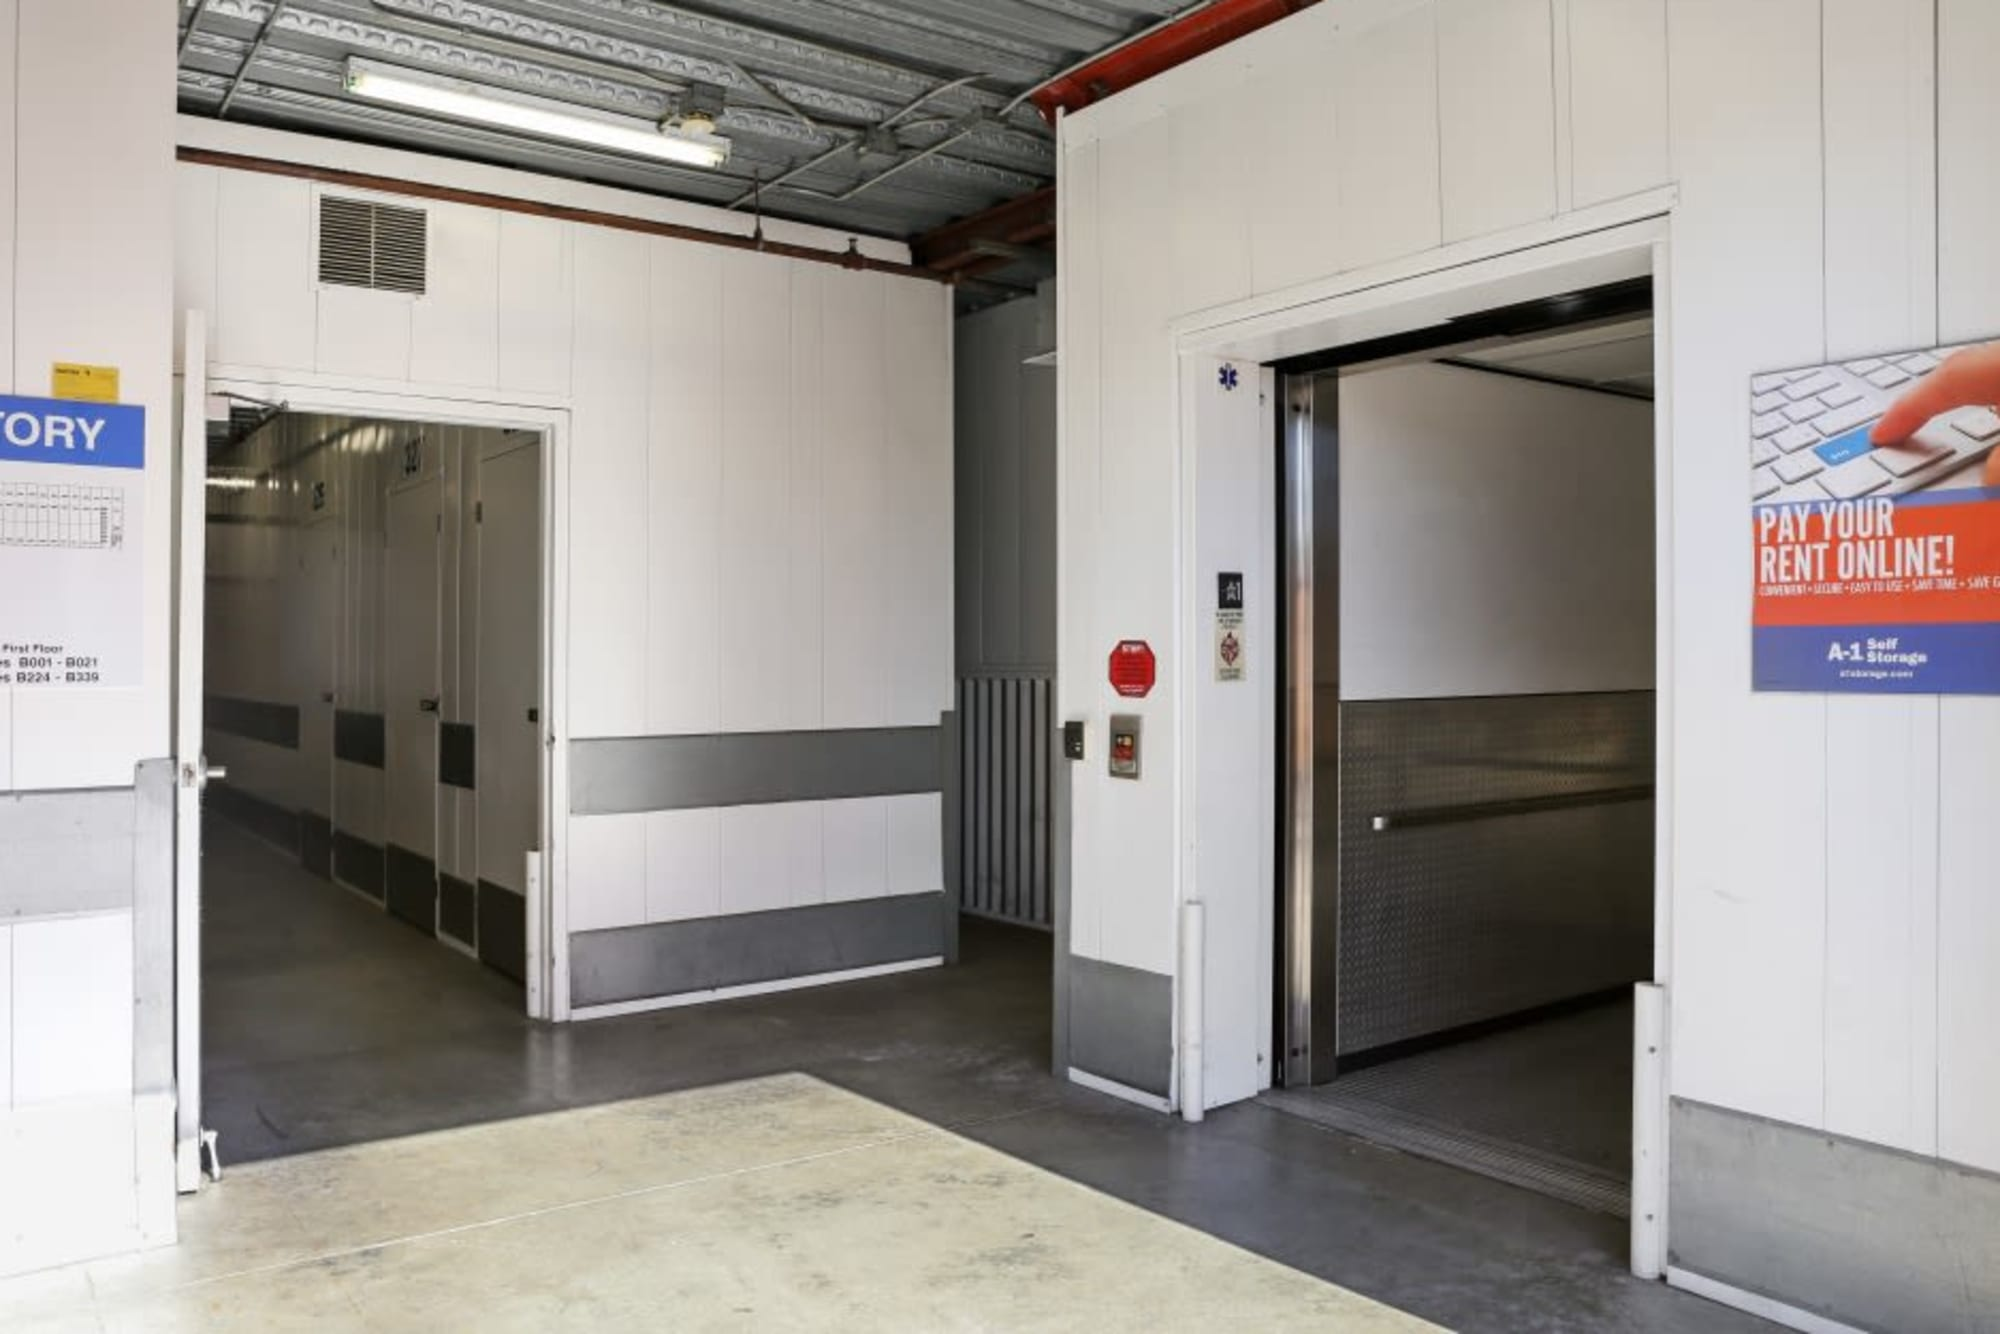 Elevator and clean hallways at A-1 Self Storage in Fullerton, California